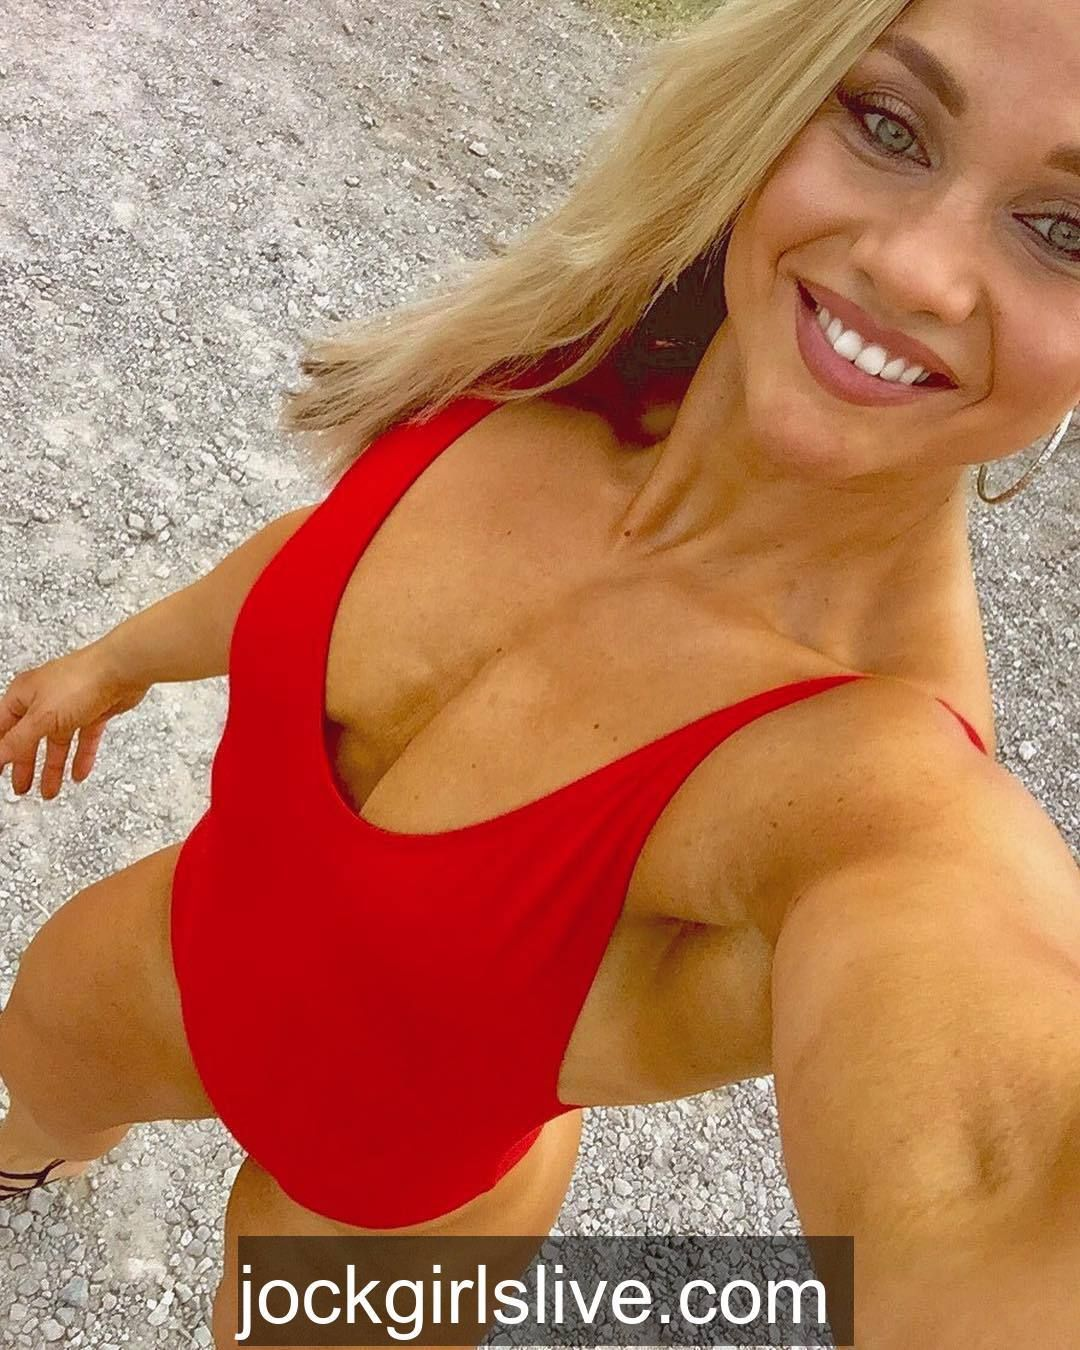 Girlswithmuscle images